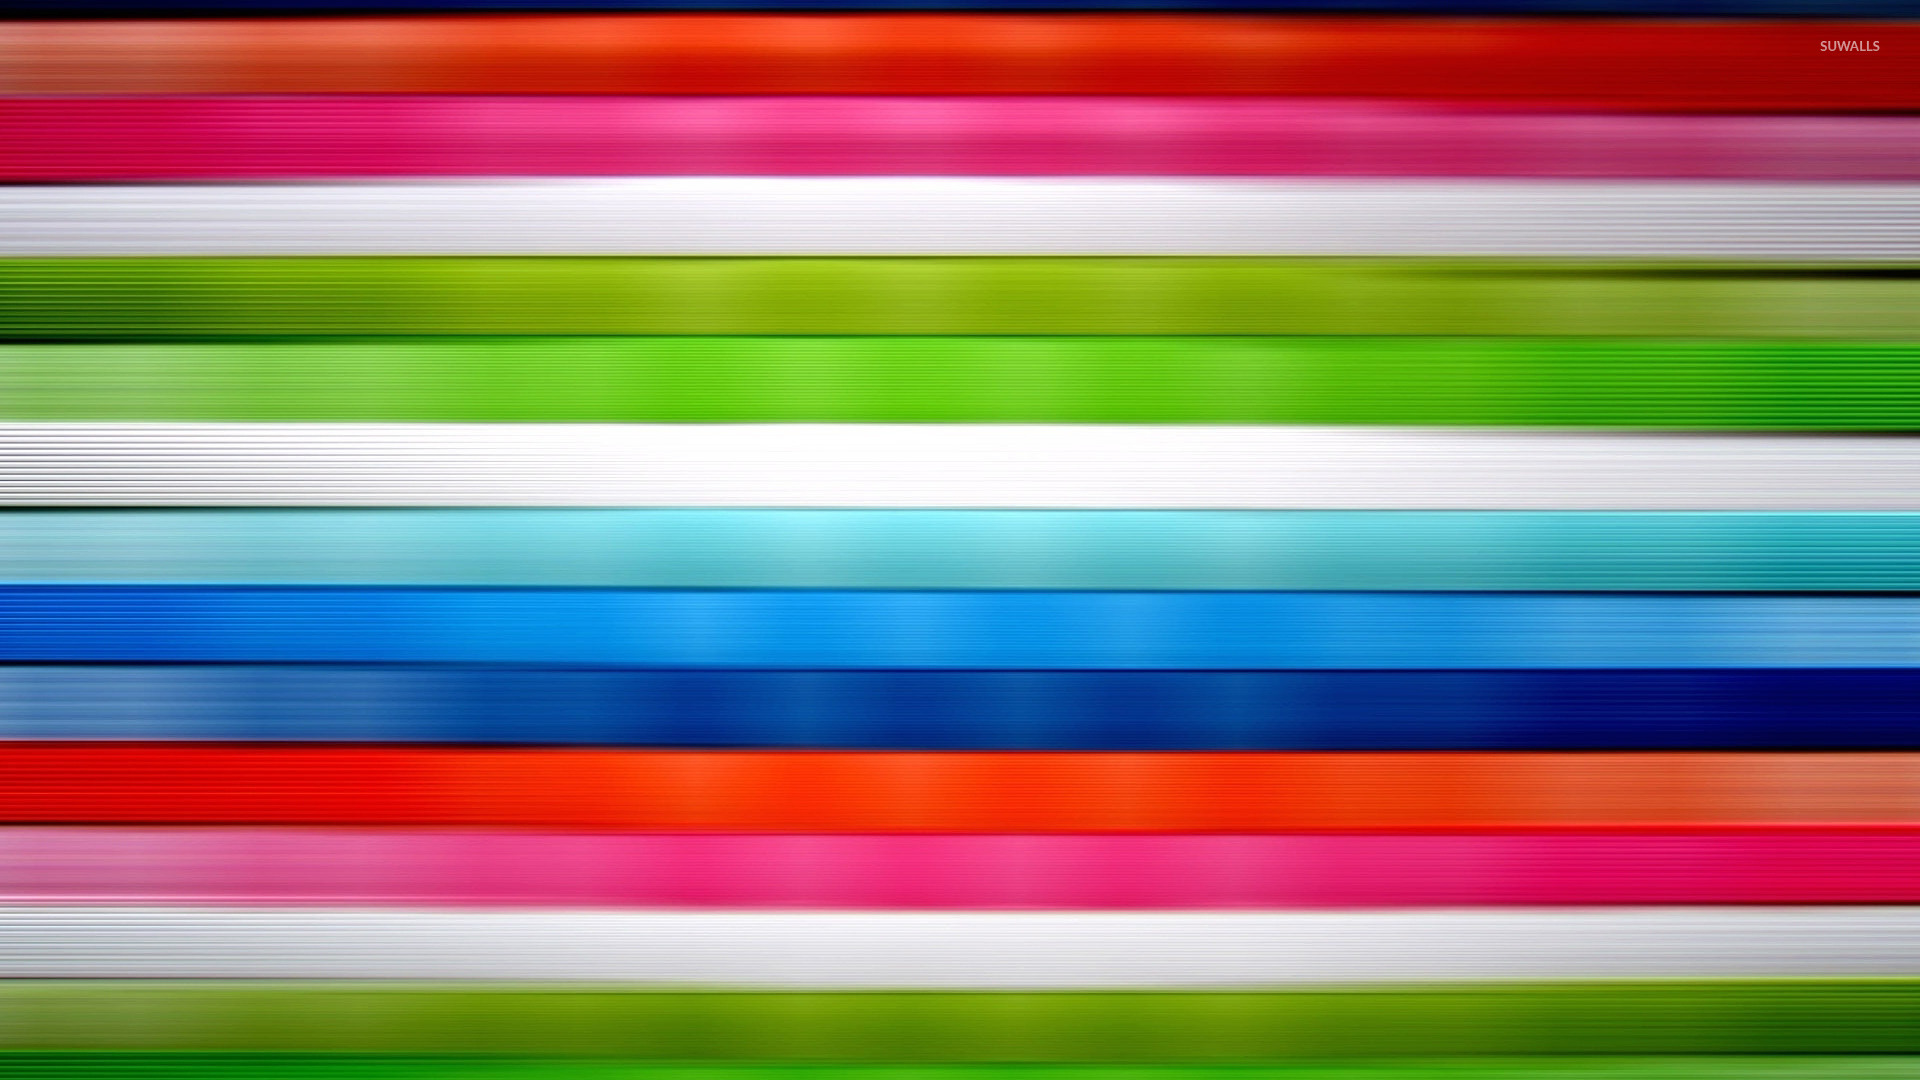 Horizontal Colorful Stripes Wallpaper Abstract HD Wallpapers Download Free Images Wallpaper [1000image.com]